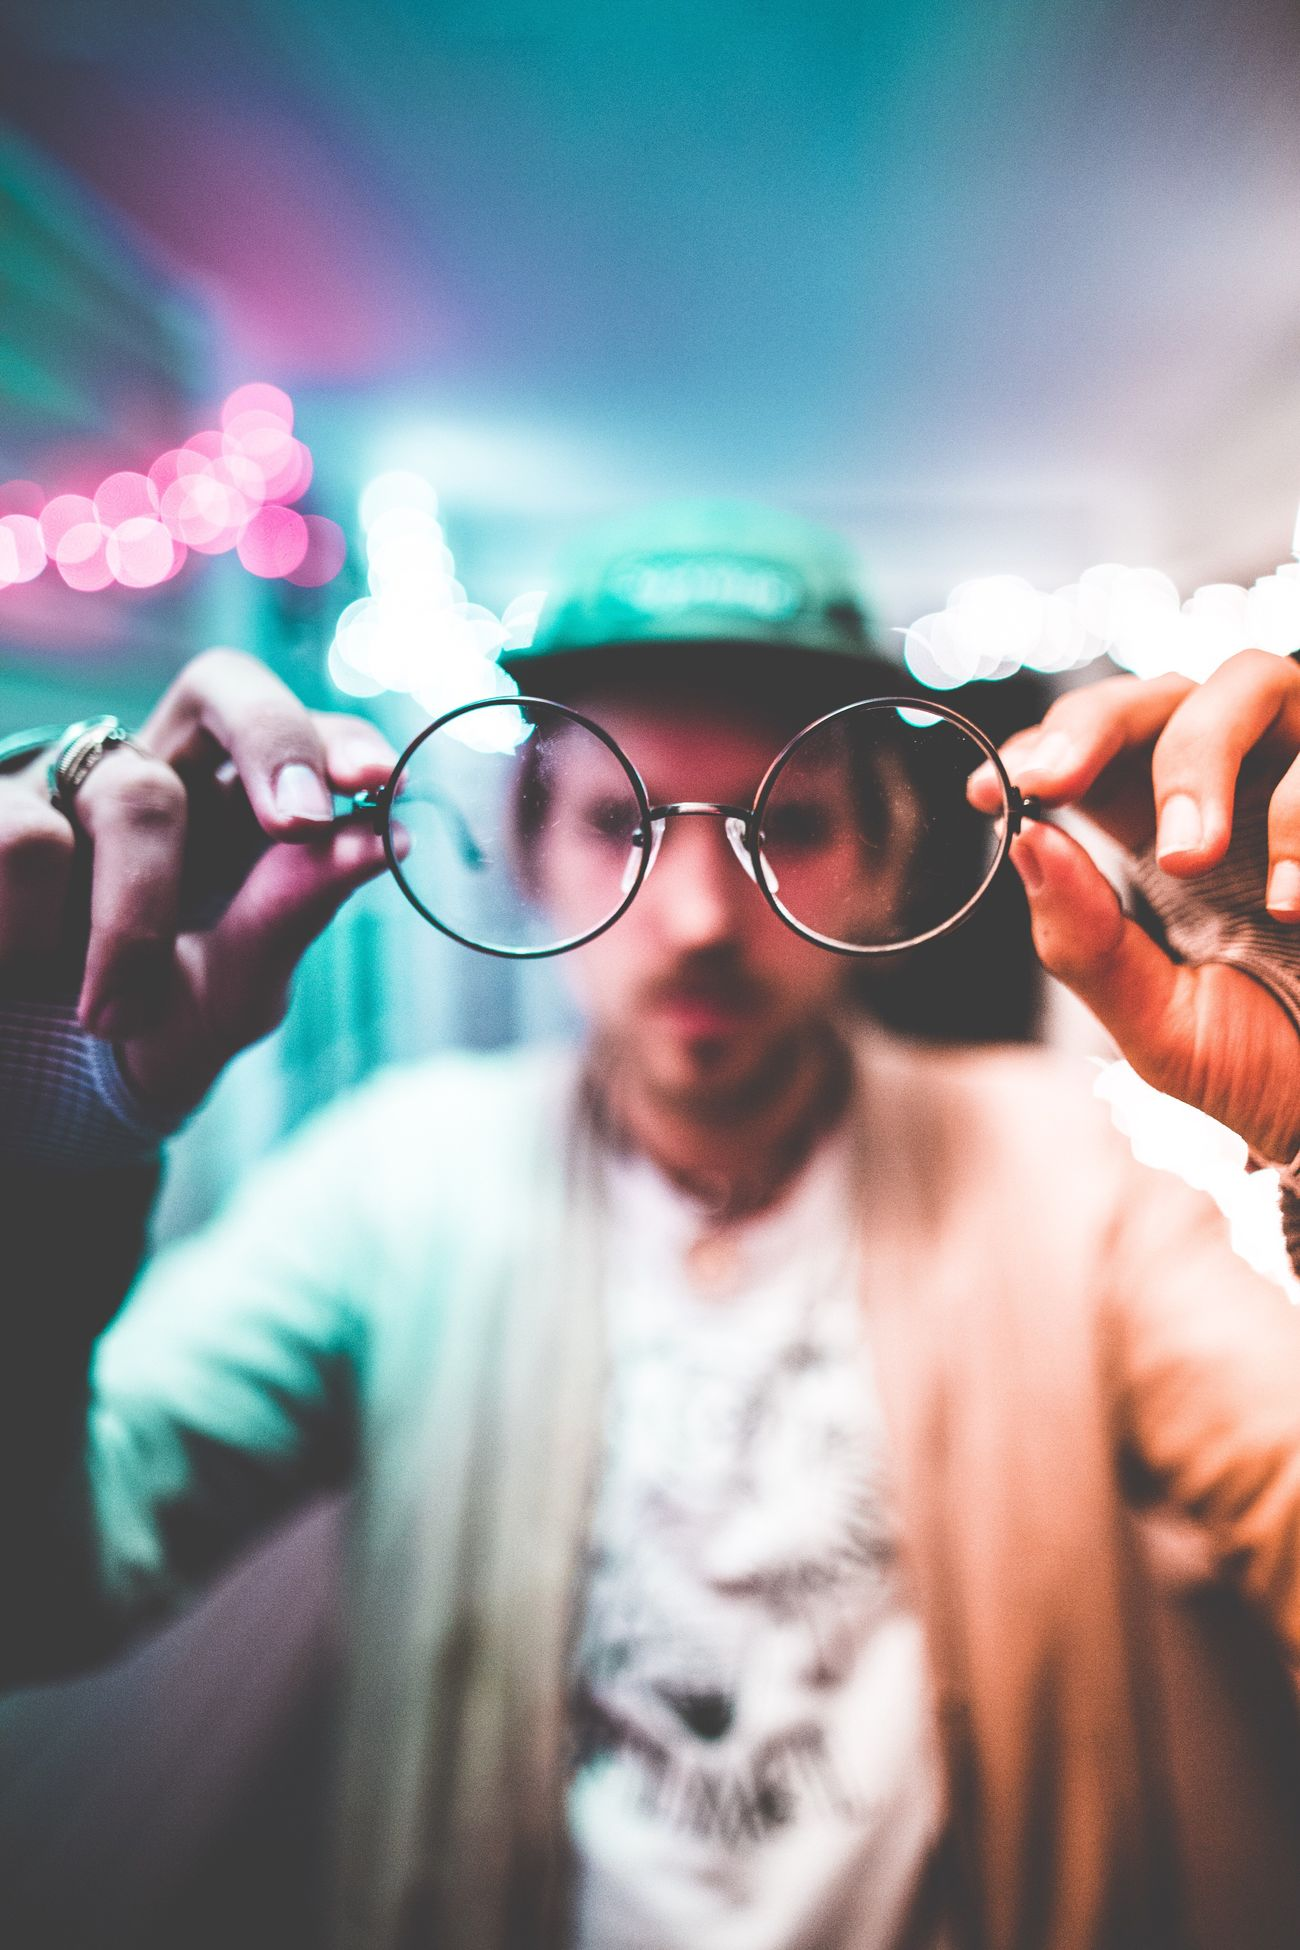 Eyeglasses  Front View One Person Glasses Close-up Real People Women Portrait Cool Eyesight Human Hand Trendy Young Adult Human Body Part Day Outdoors